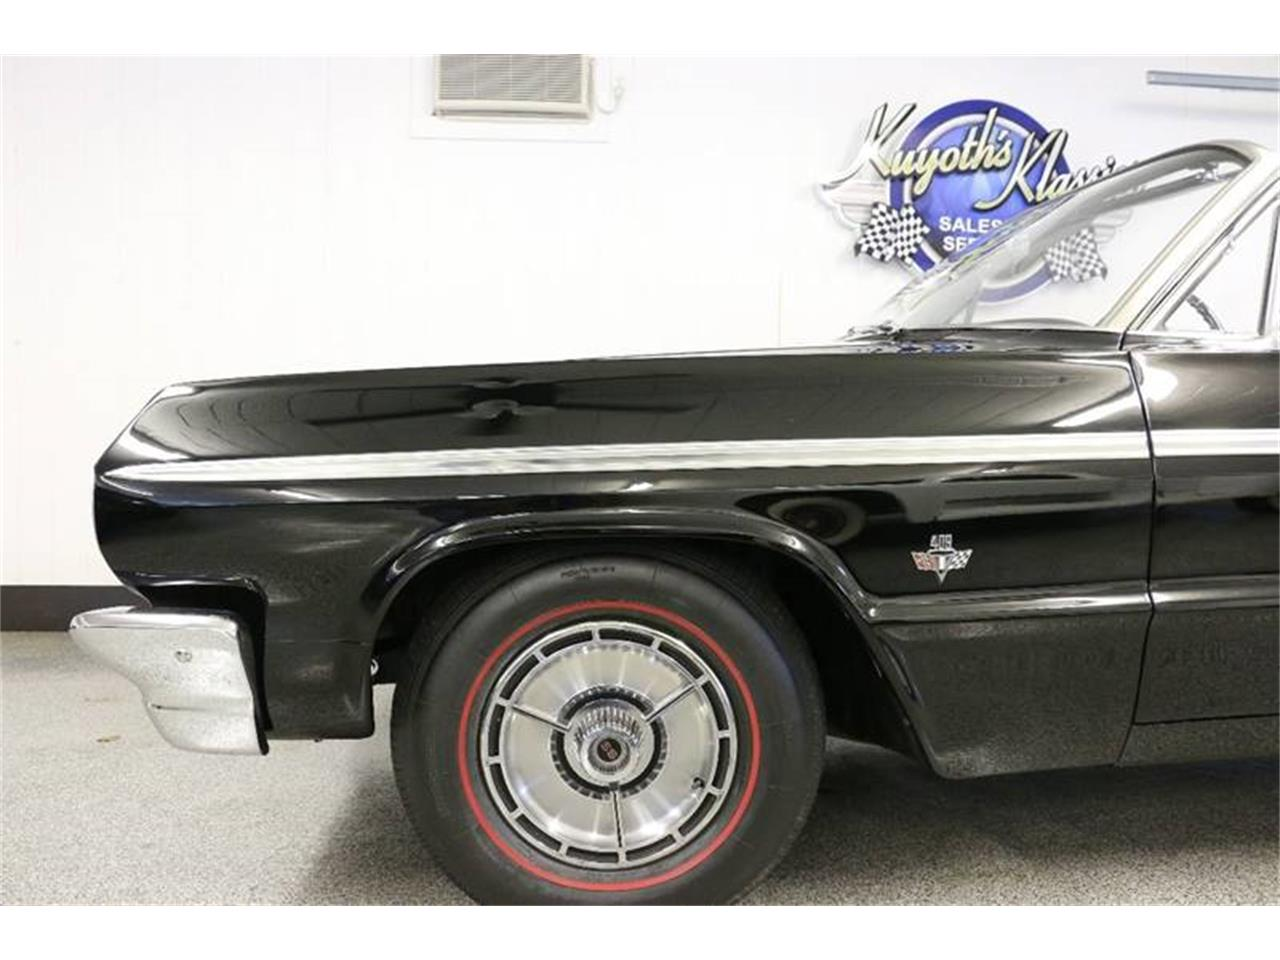 Large Picture of 1964 Chevrolet Impala Offered by Kuyoth's Klassics - MHC3